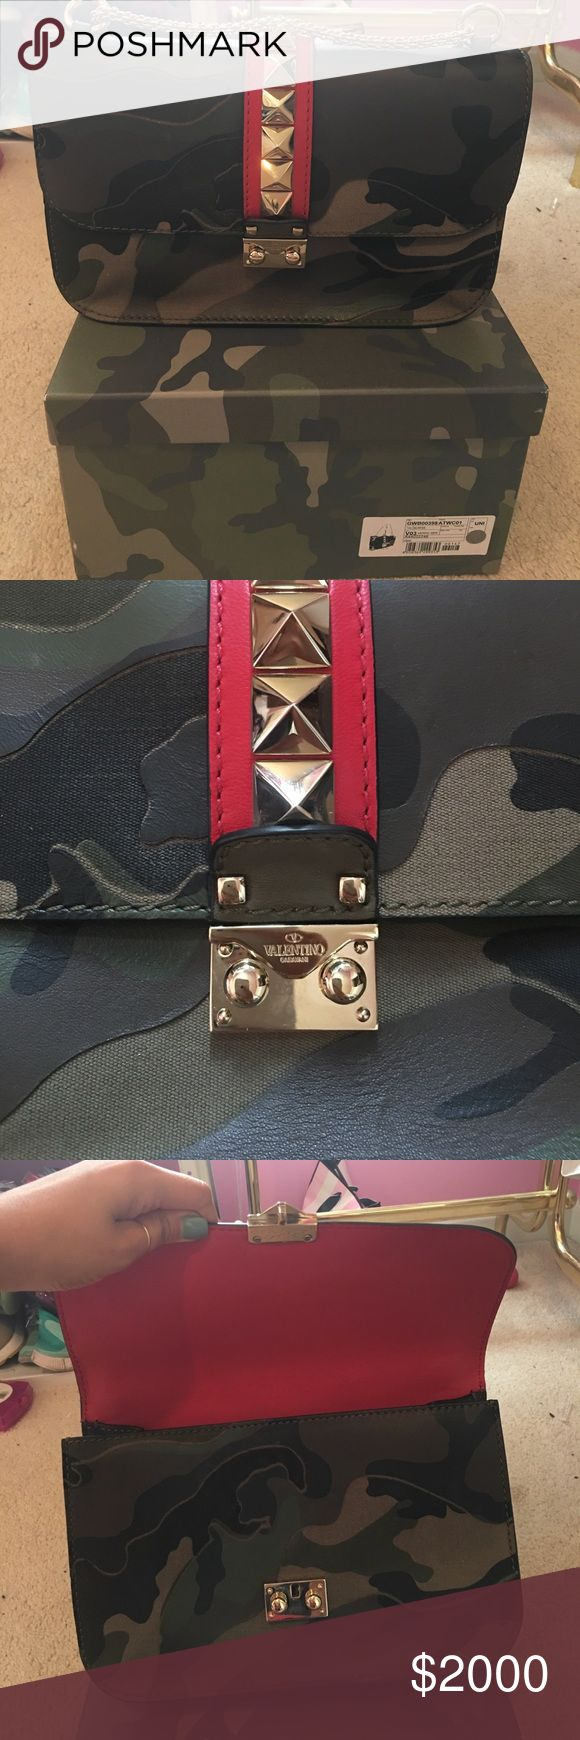 Valentino Camo Bag Valentino Rockstud purse (Camo color) comes with original box and dustbag Valentino Garavani Bags Shoulder Bags